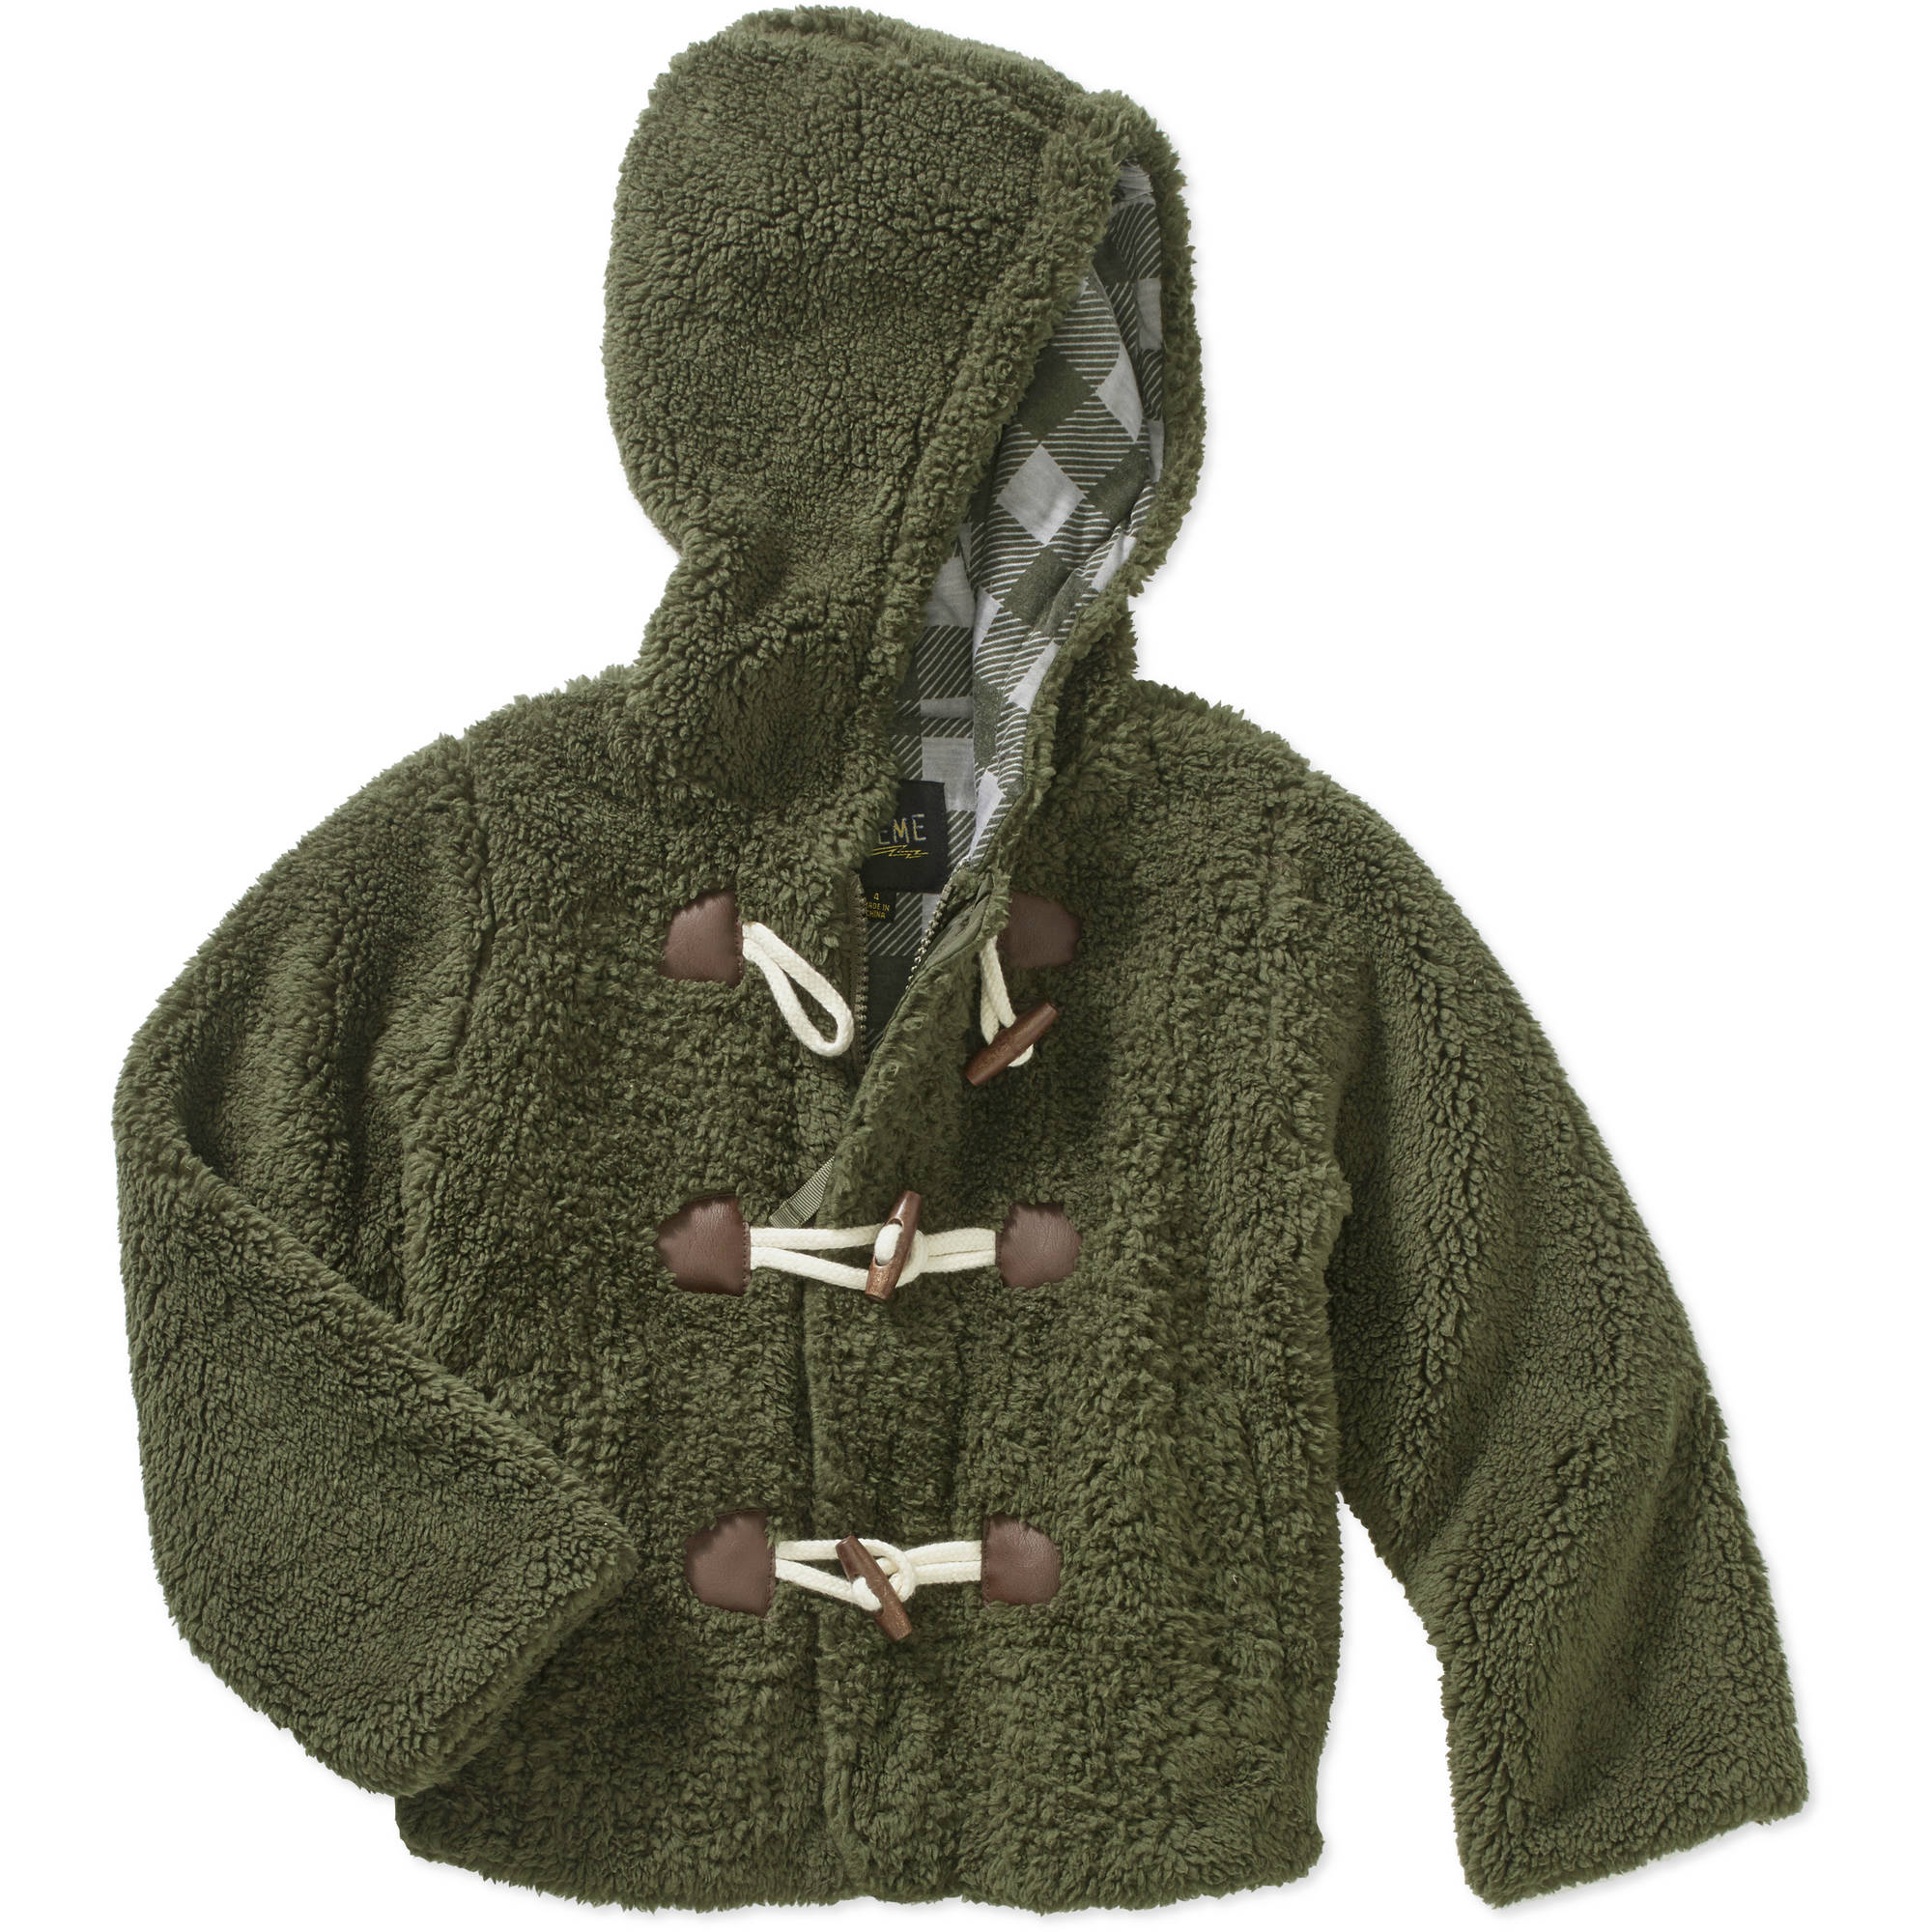 iExtreme Little Boys' Sherpa Duffle Jacket